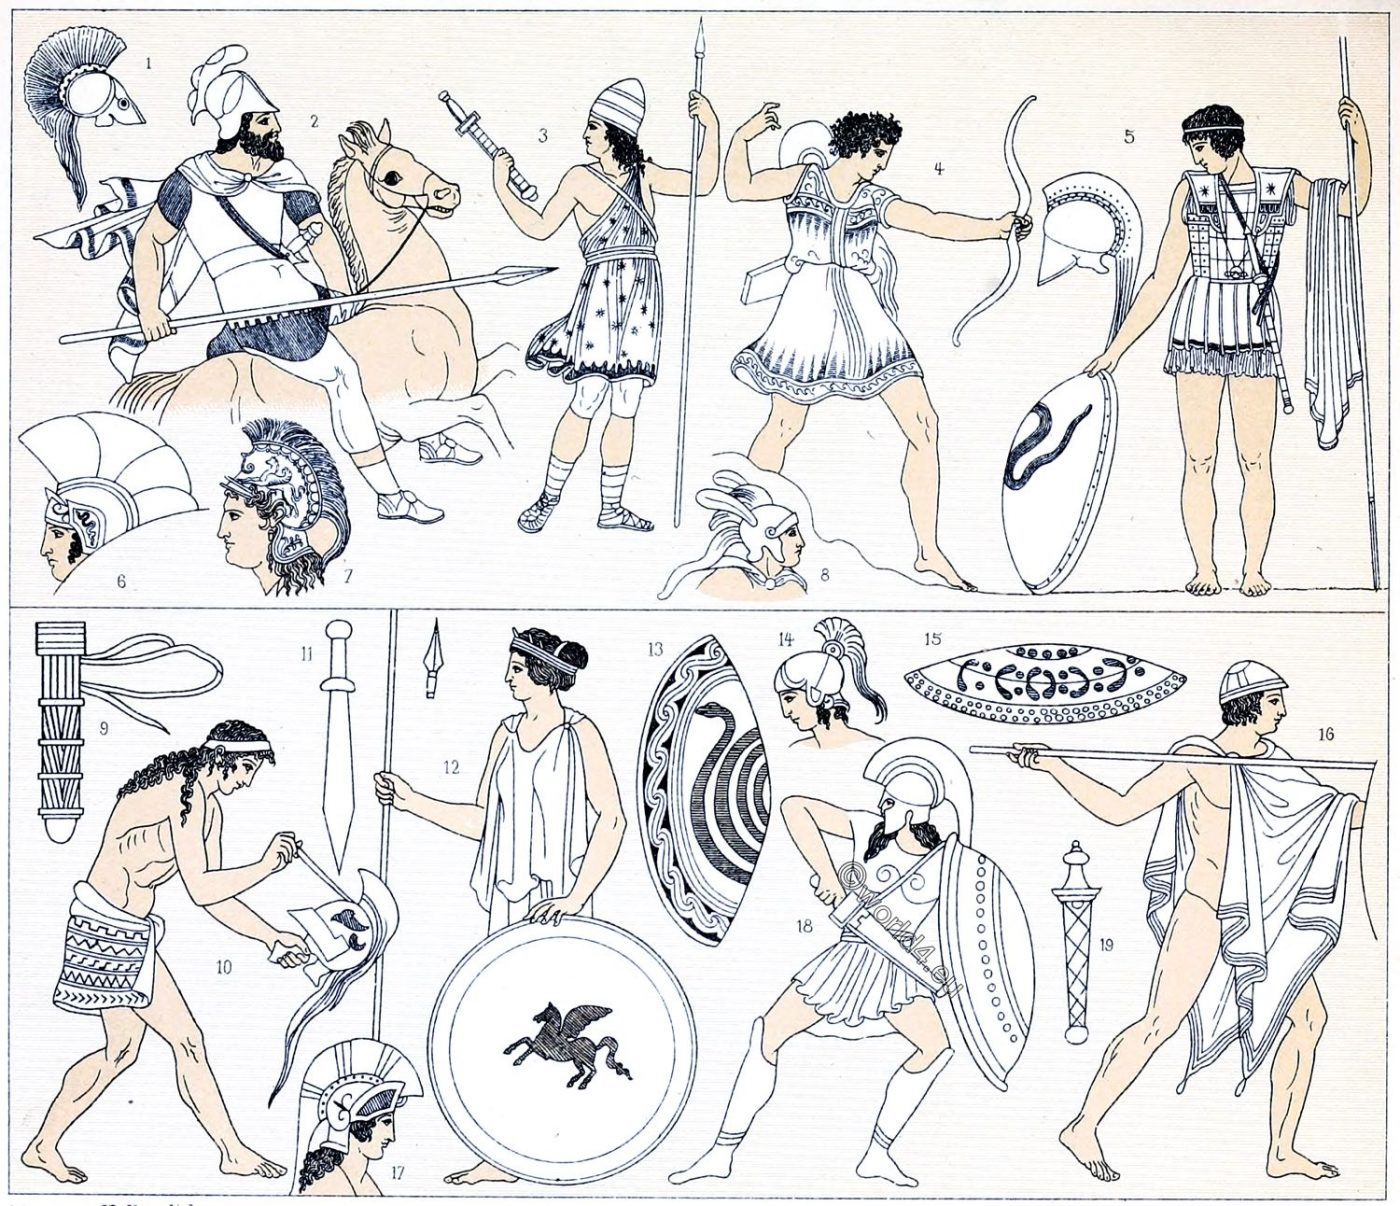 Greek, War costumes, weapons, Spartans, Hoplites, Peltasts